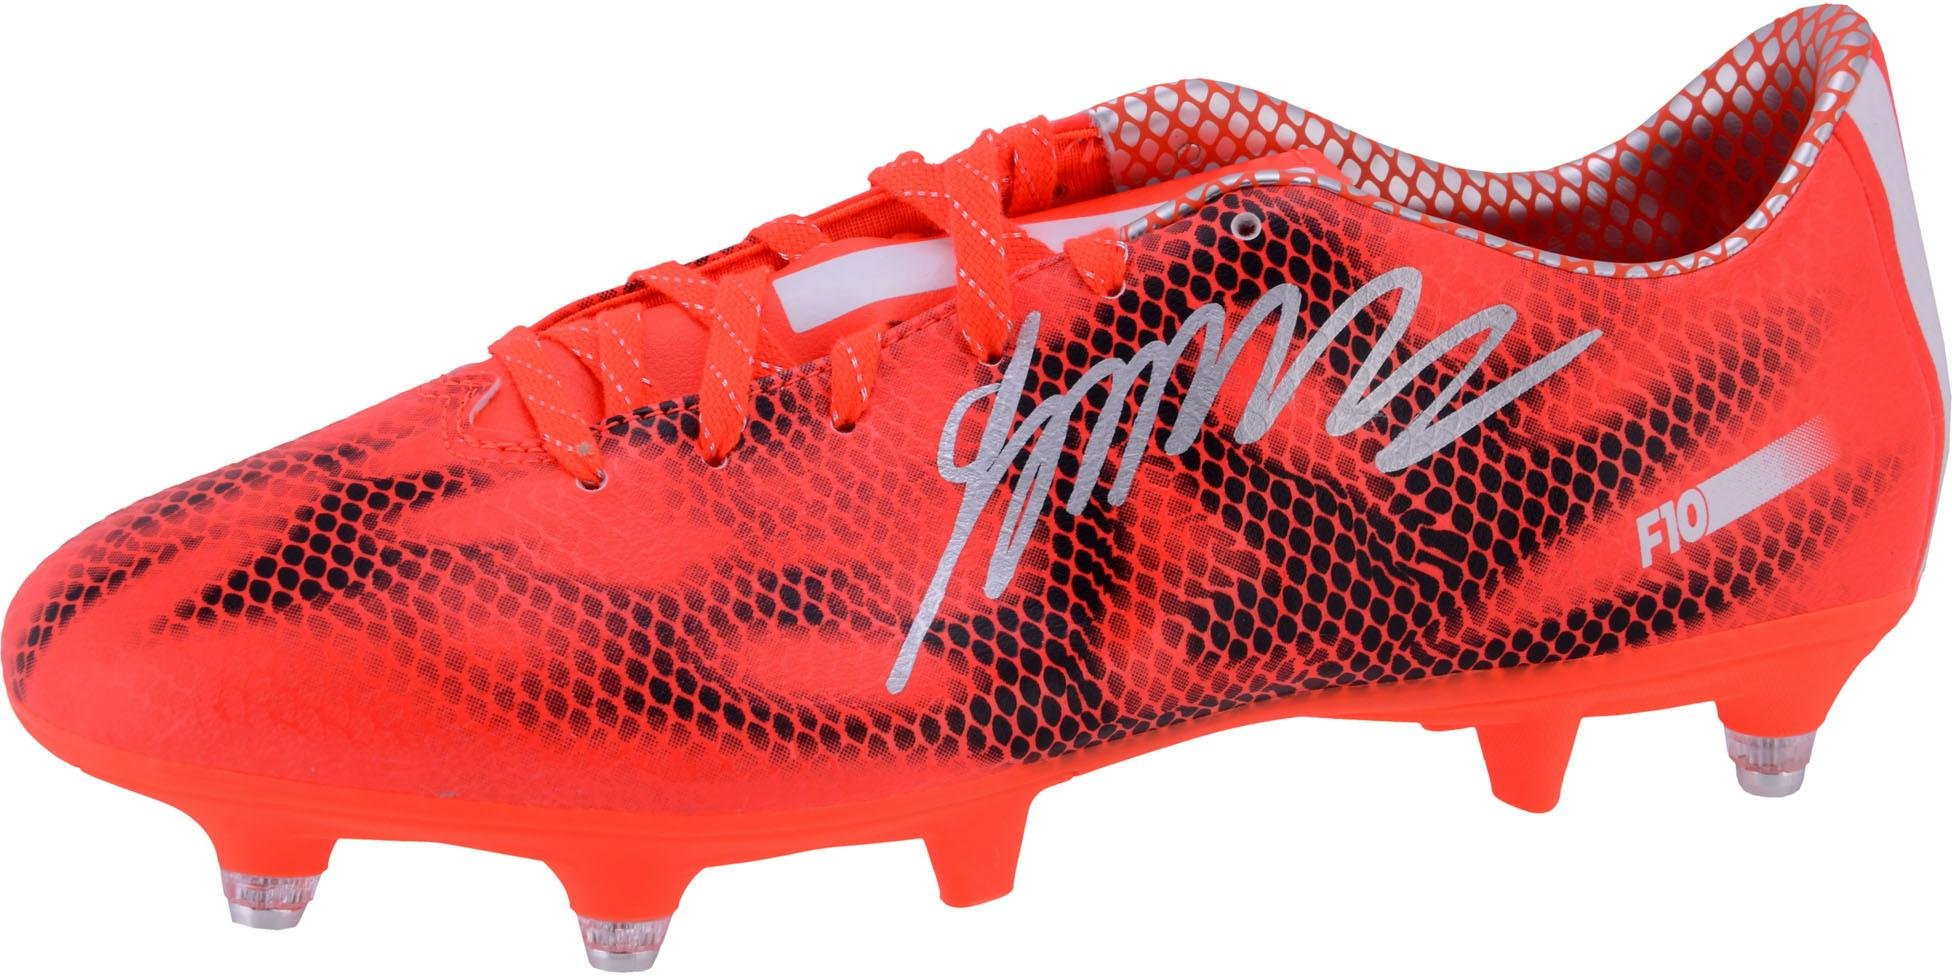 41563ecff Buy James Rodriguez Real Madrid Autographed Orange Adidas Soccer Cleats - Fanatics  Authentic Certified - Autographed Soccer Cleats in Cheap Price on ...